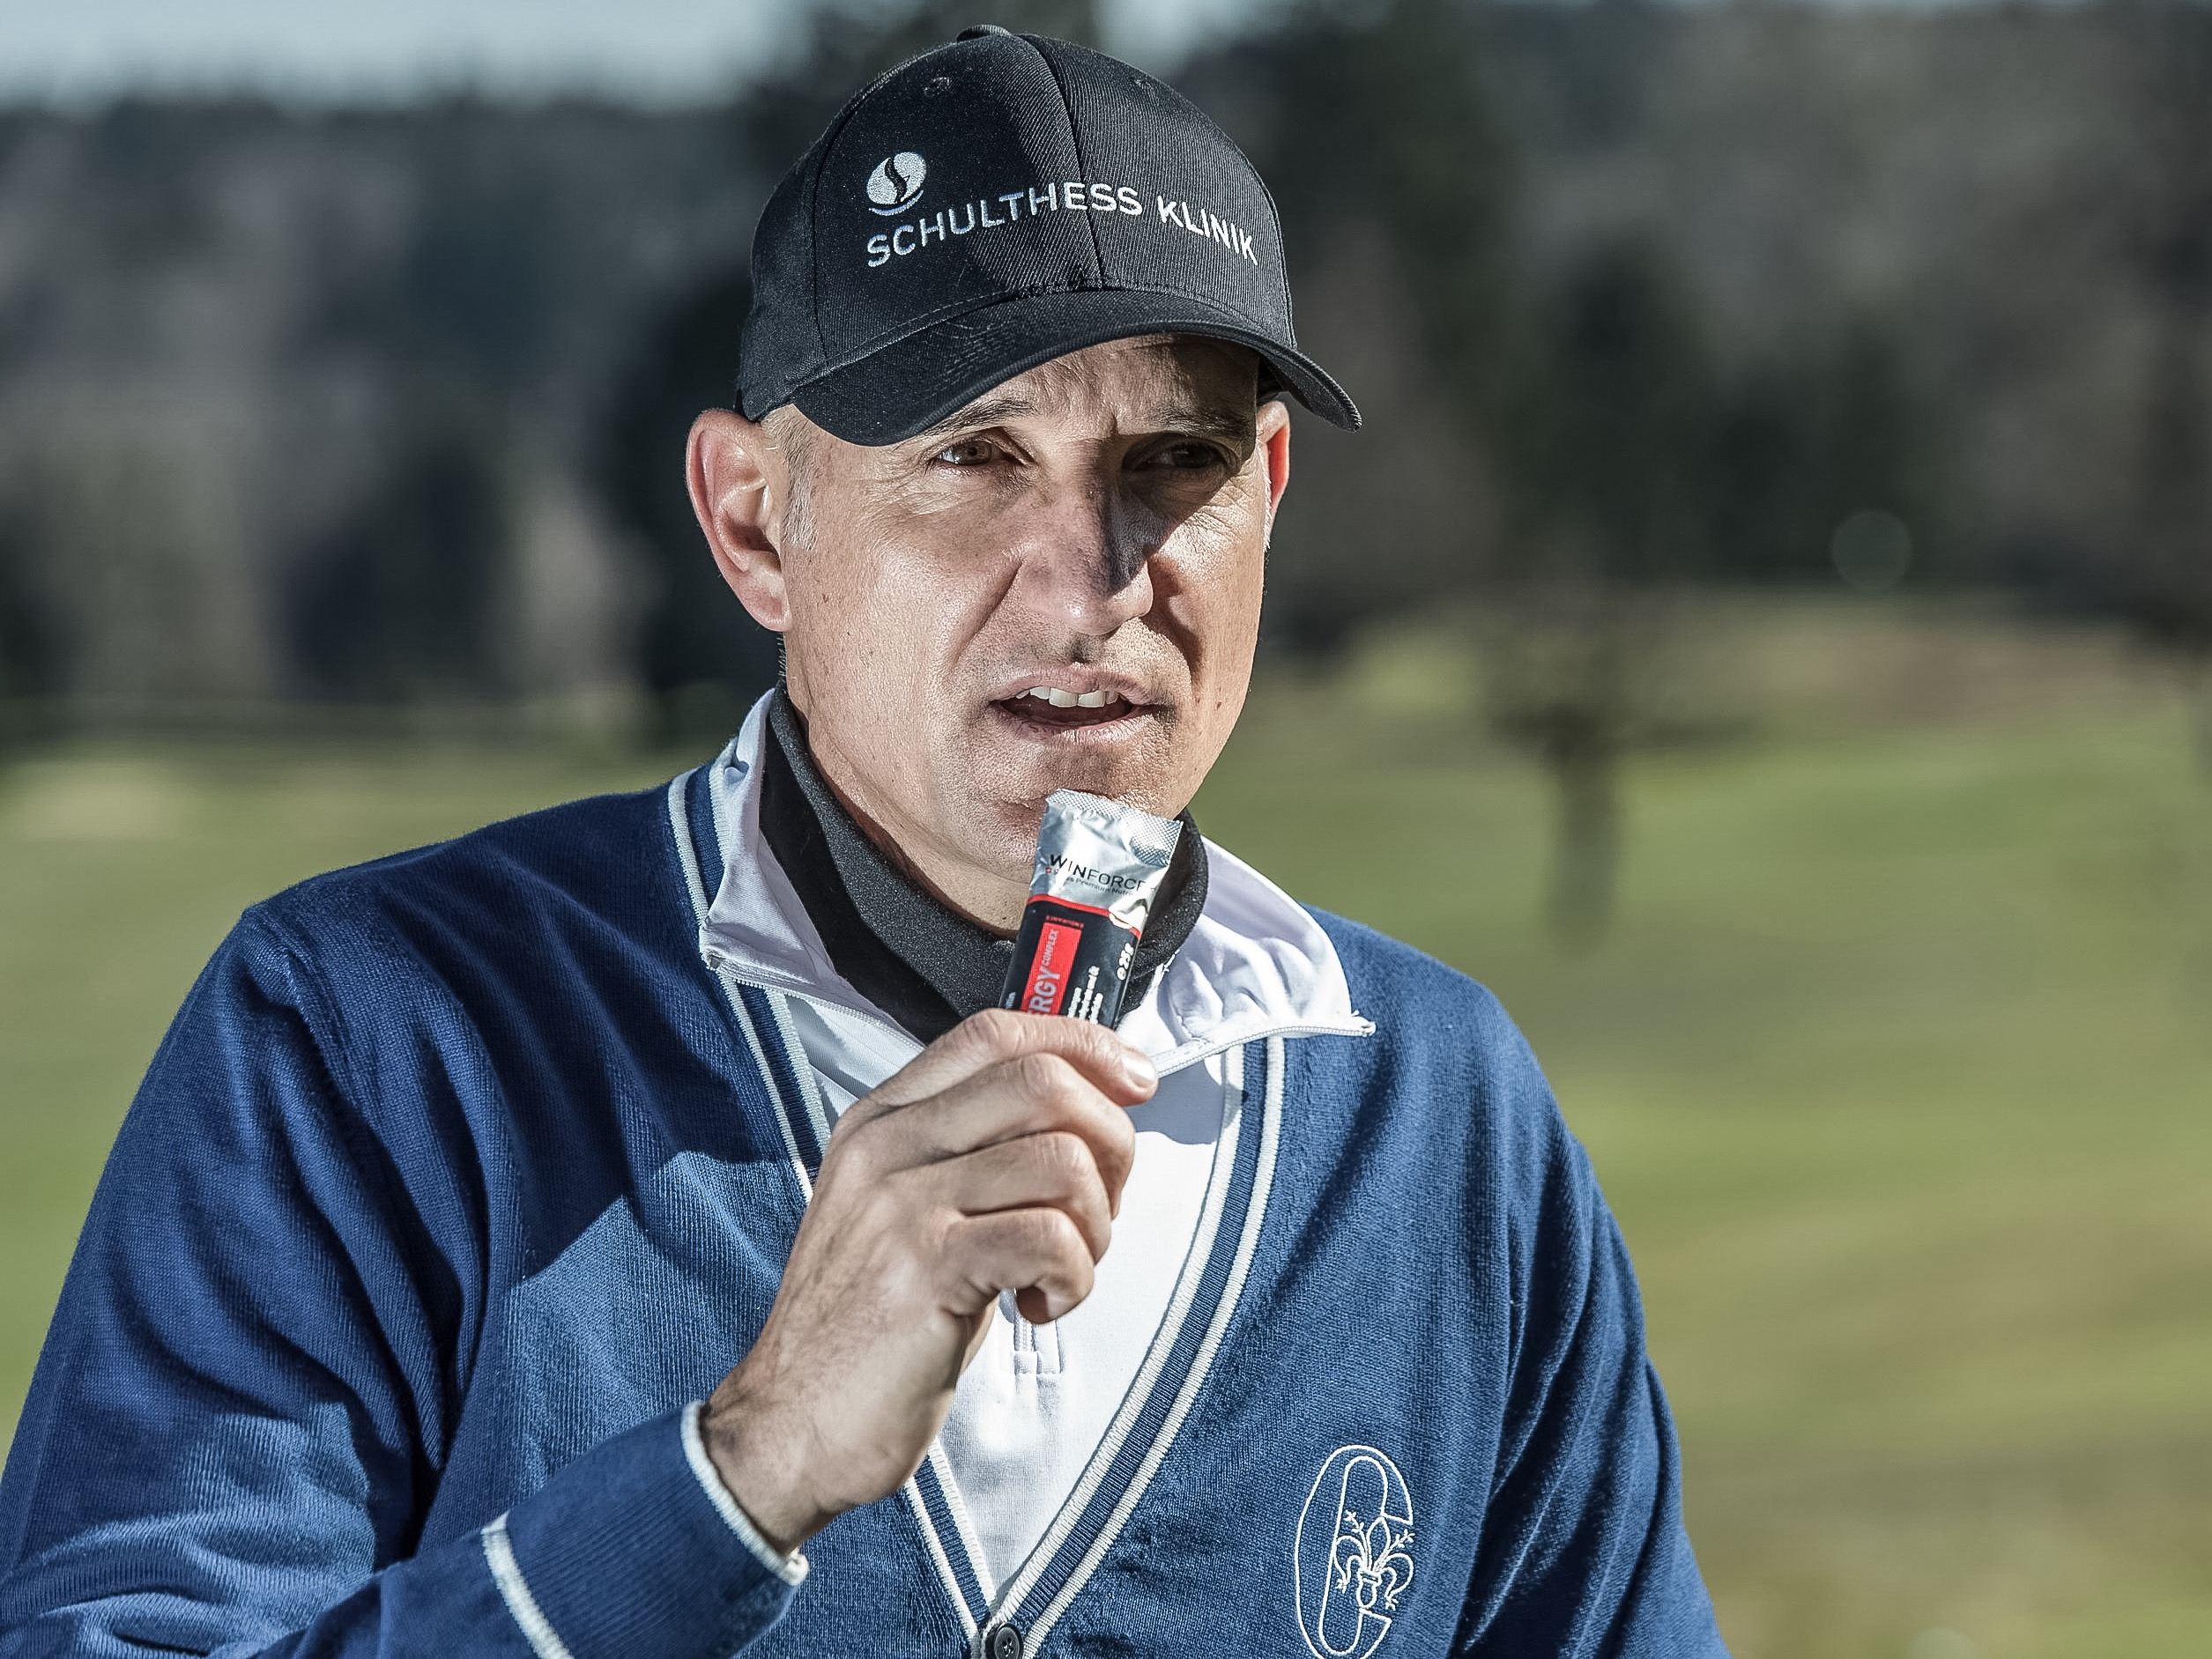 winforce_bossert_andre_senior_tour